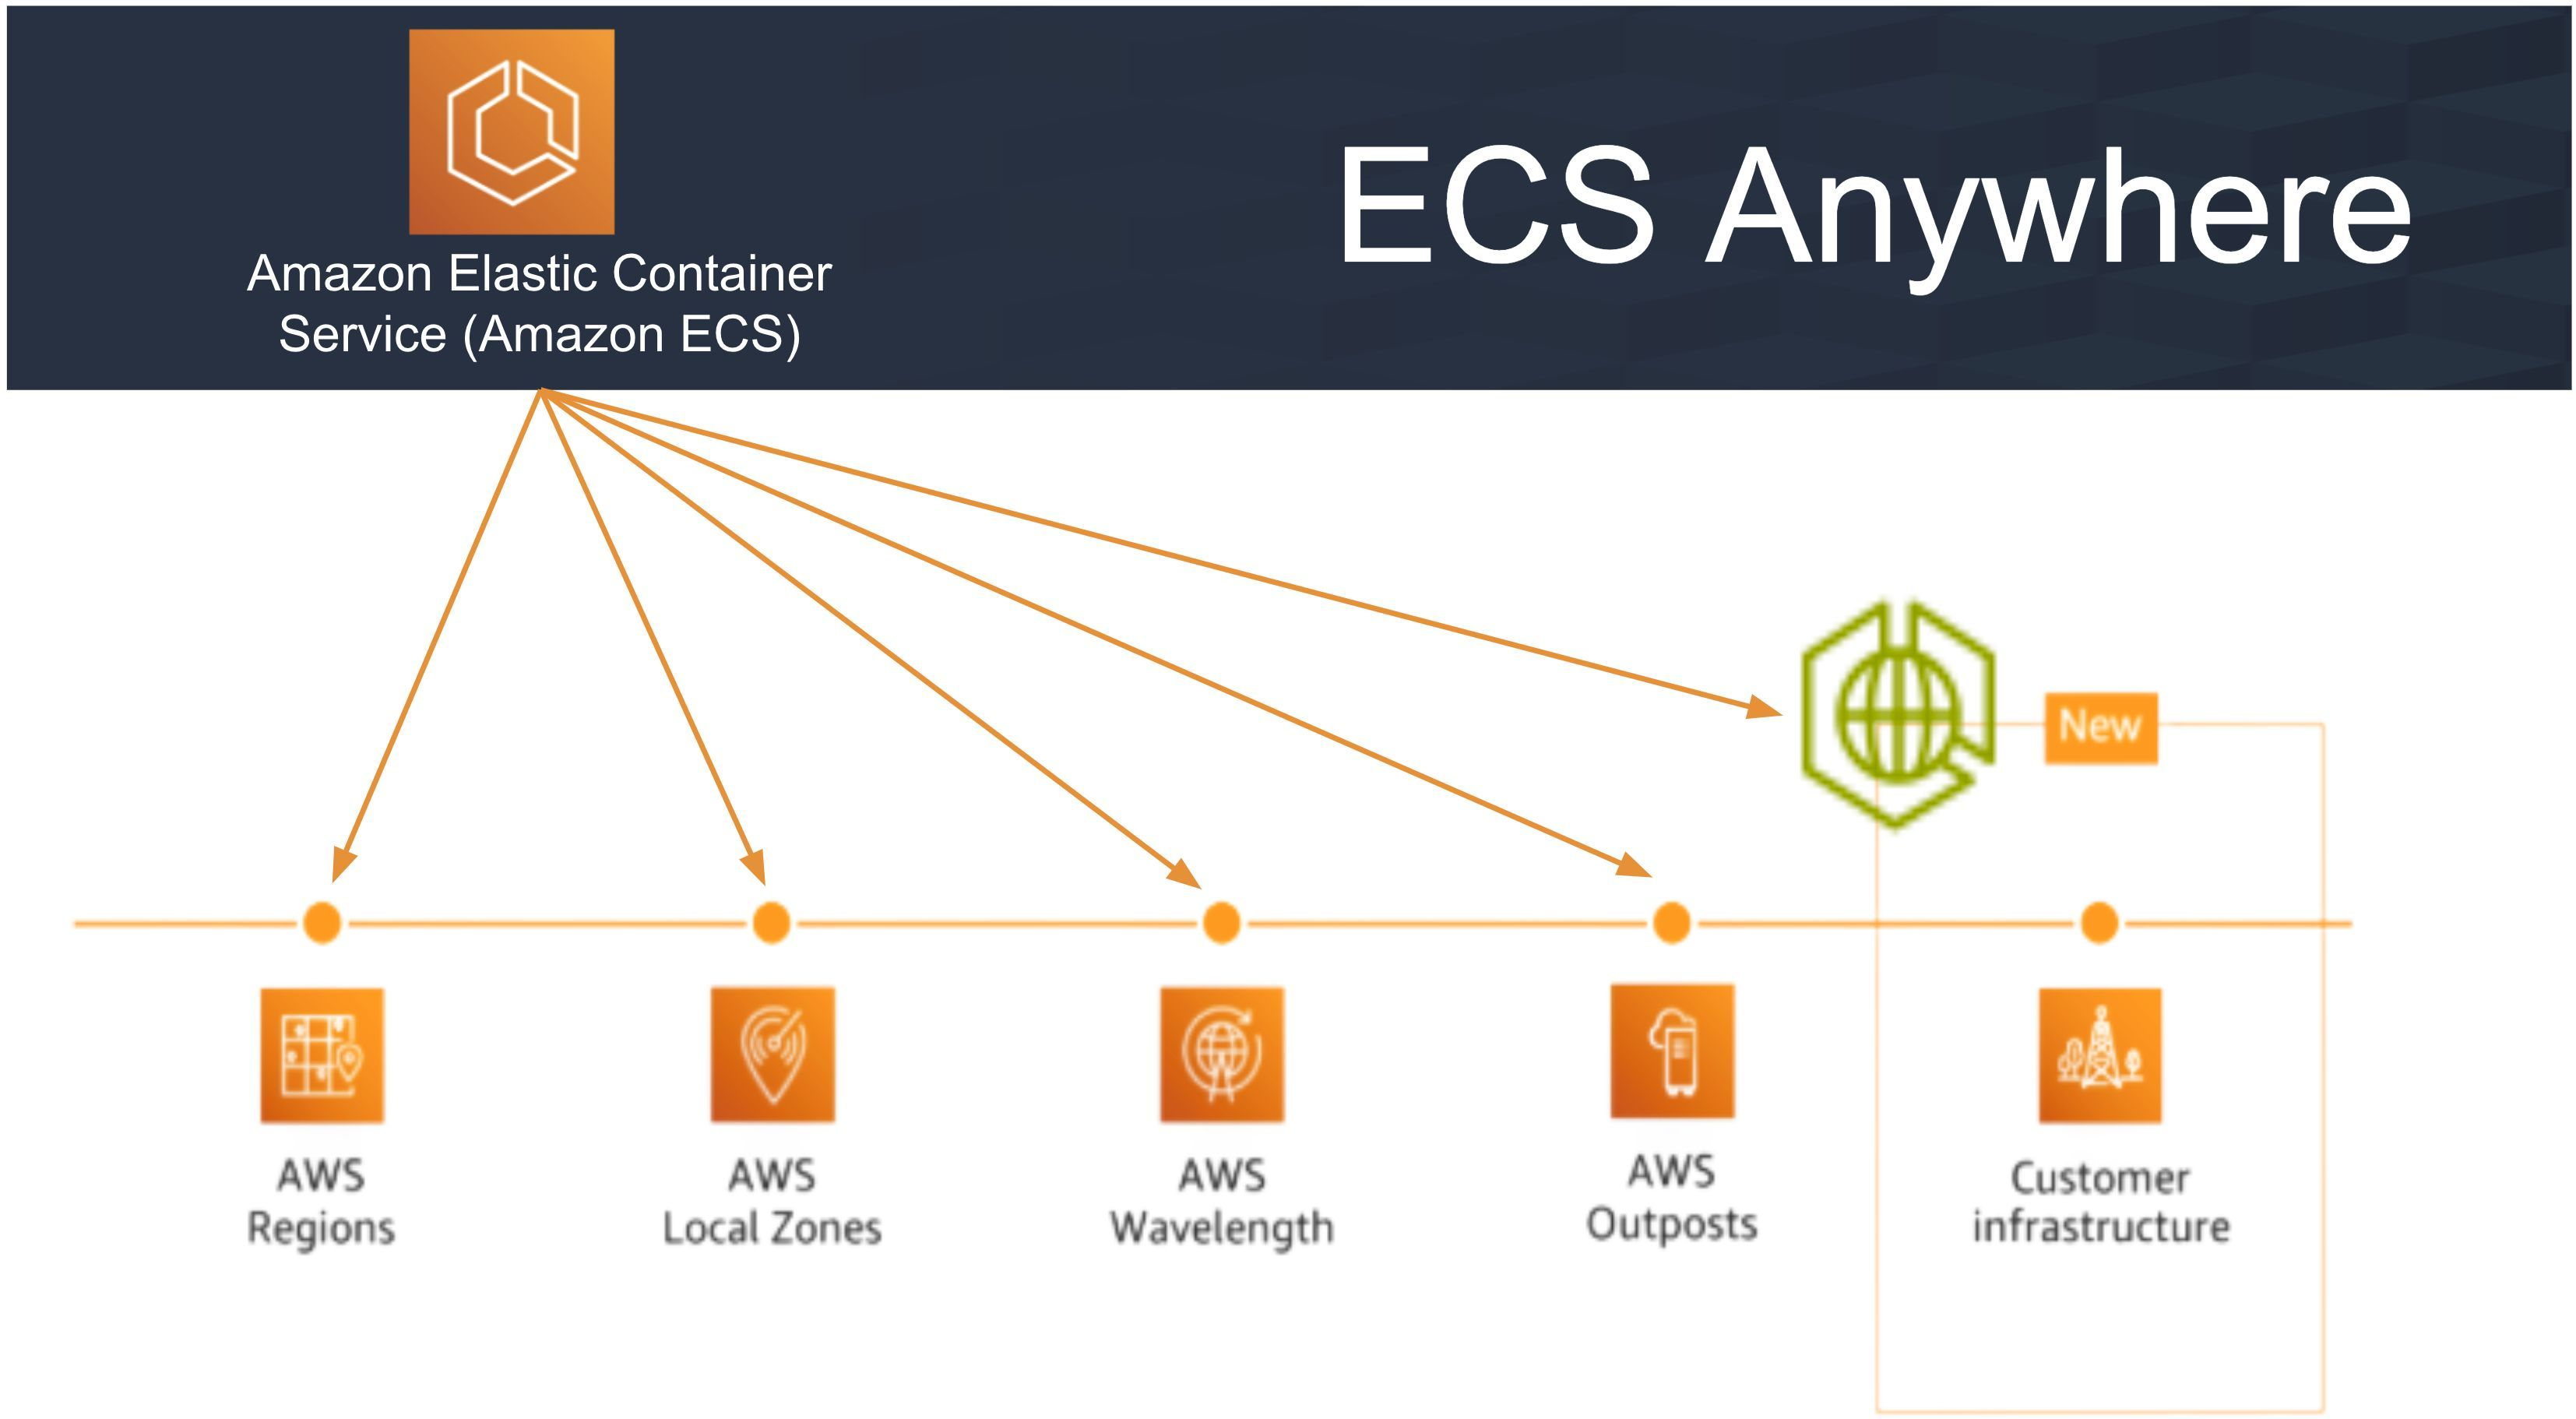 /amazon-elastic-container-service-ecs-anywhere-a-new-ecs-function-rhq34e6 feature image